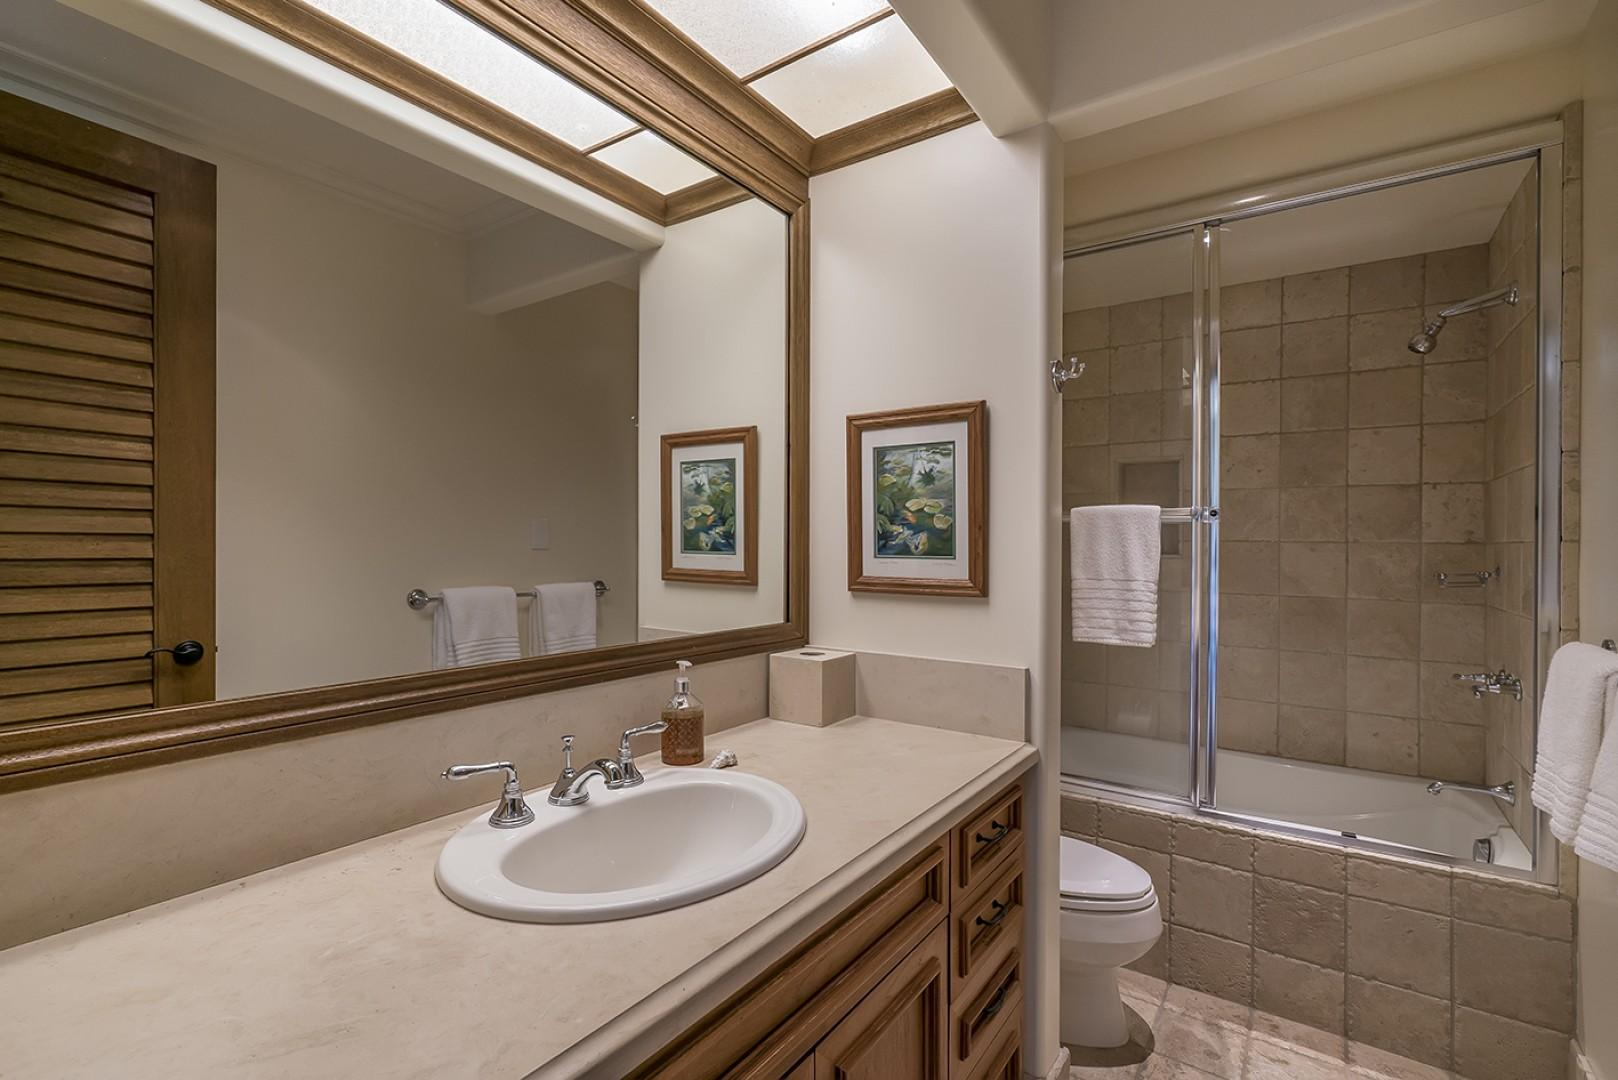 Guest house: Shared Bathroom for conjoined bedrooms, located just outside guest bedroom 2.